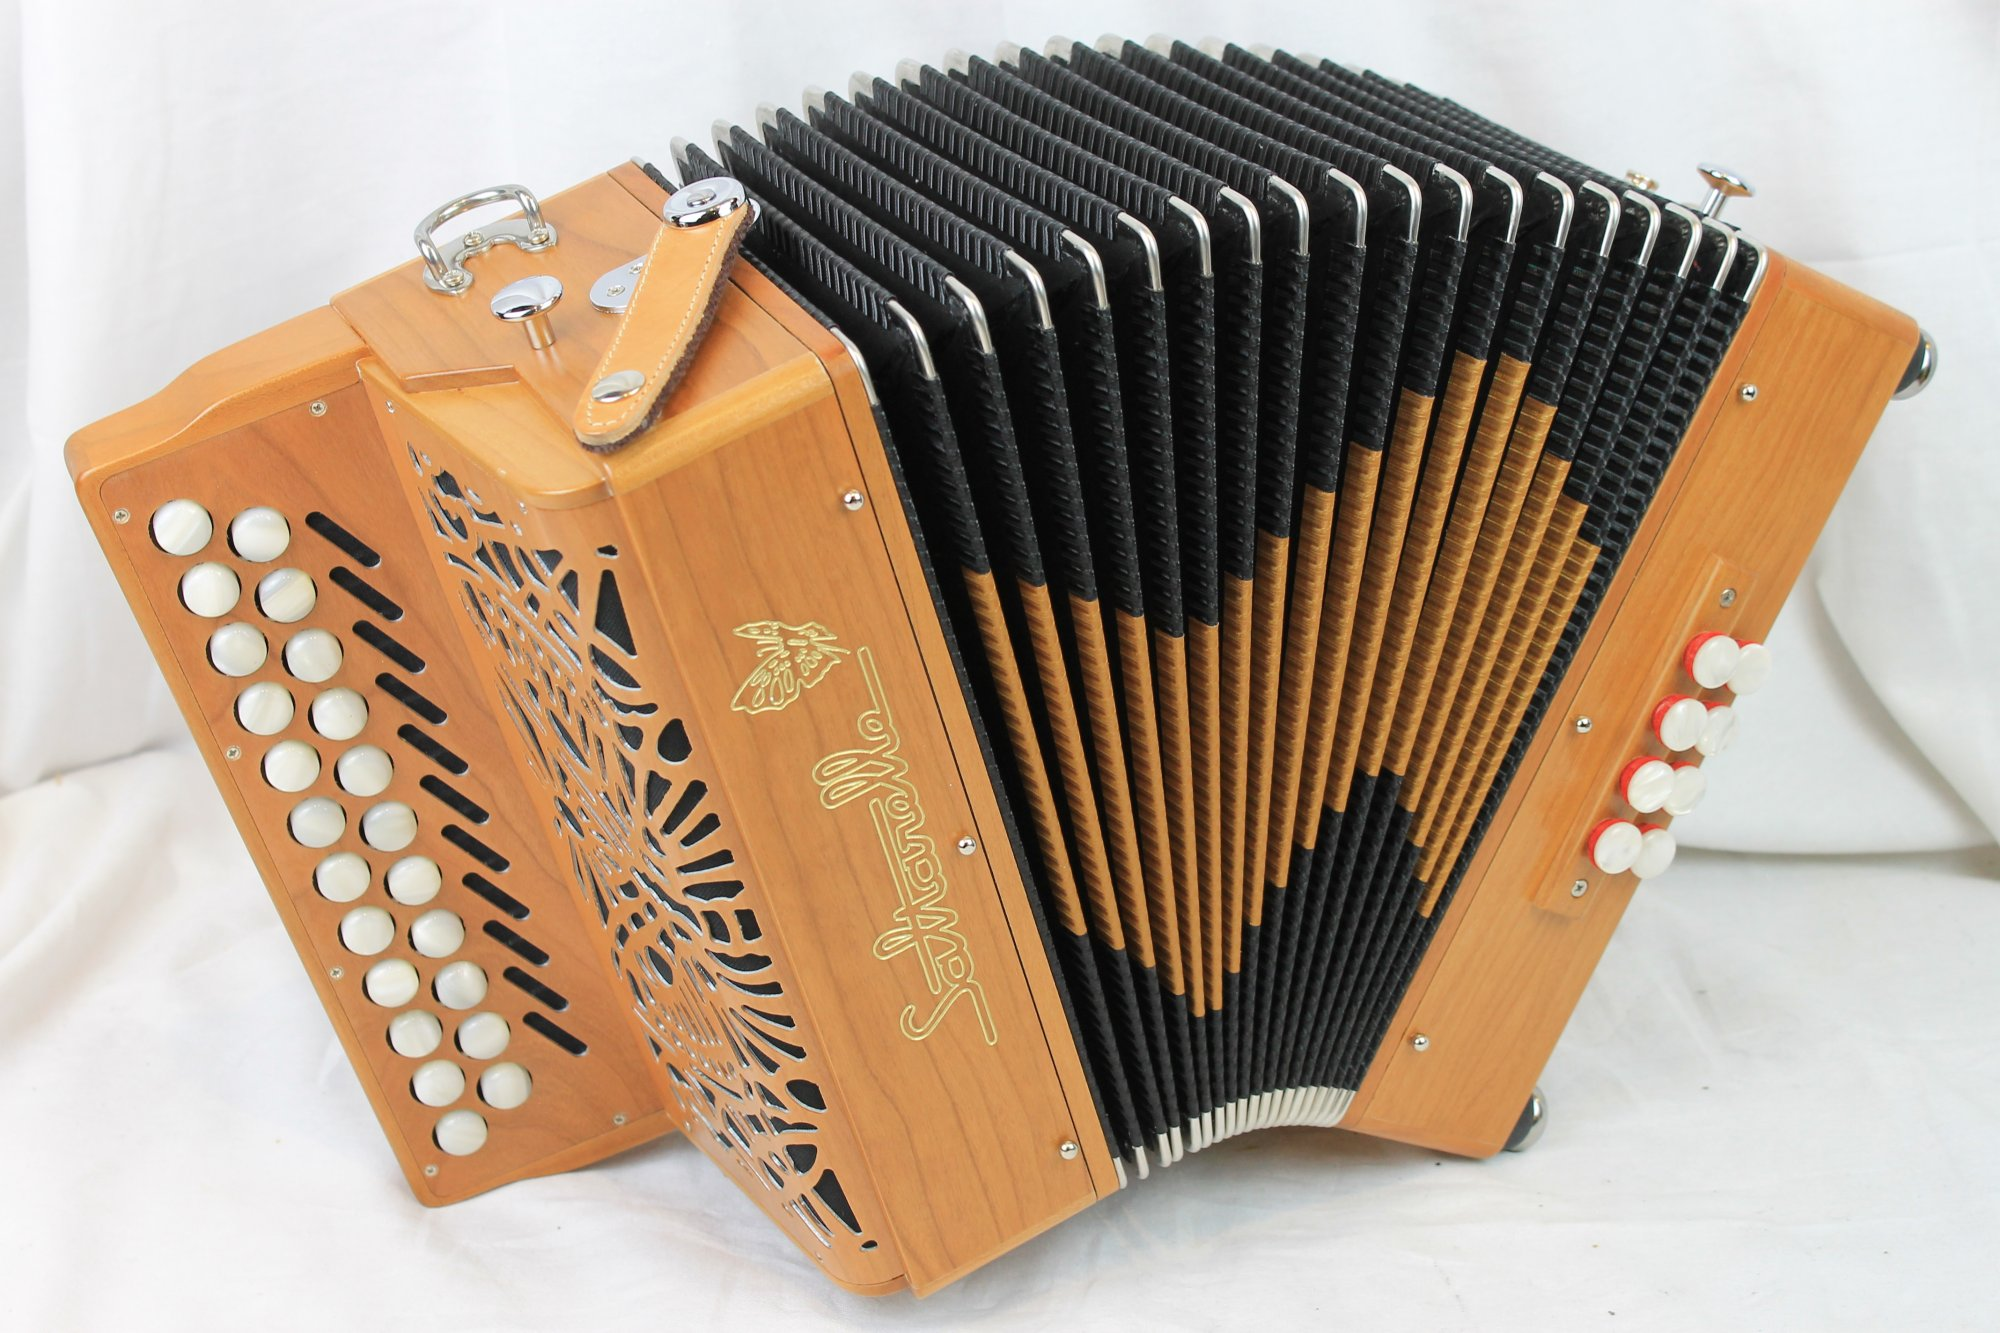 NEW Cherry Saltarelle Awen Diatonic Button Accordion B C LMM 23 8